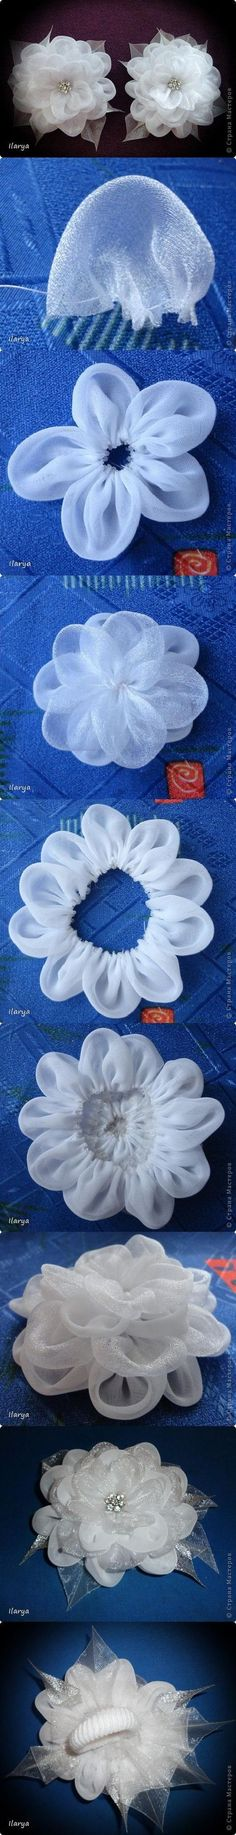 DIY Fabric Lust Flower DIY Projects                                                                                                                                                      Más